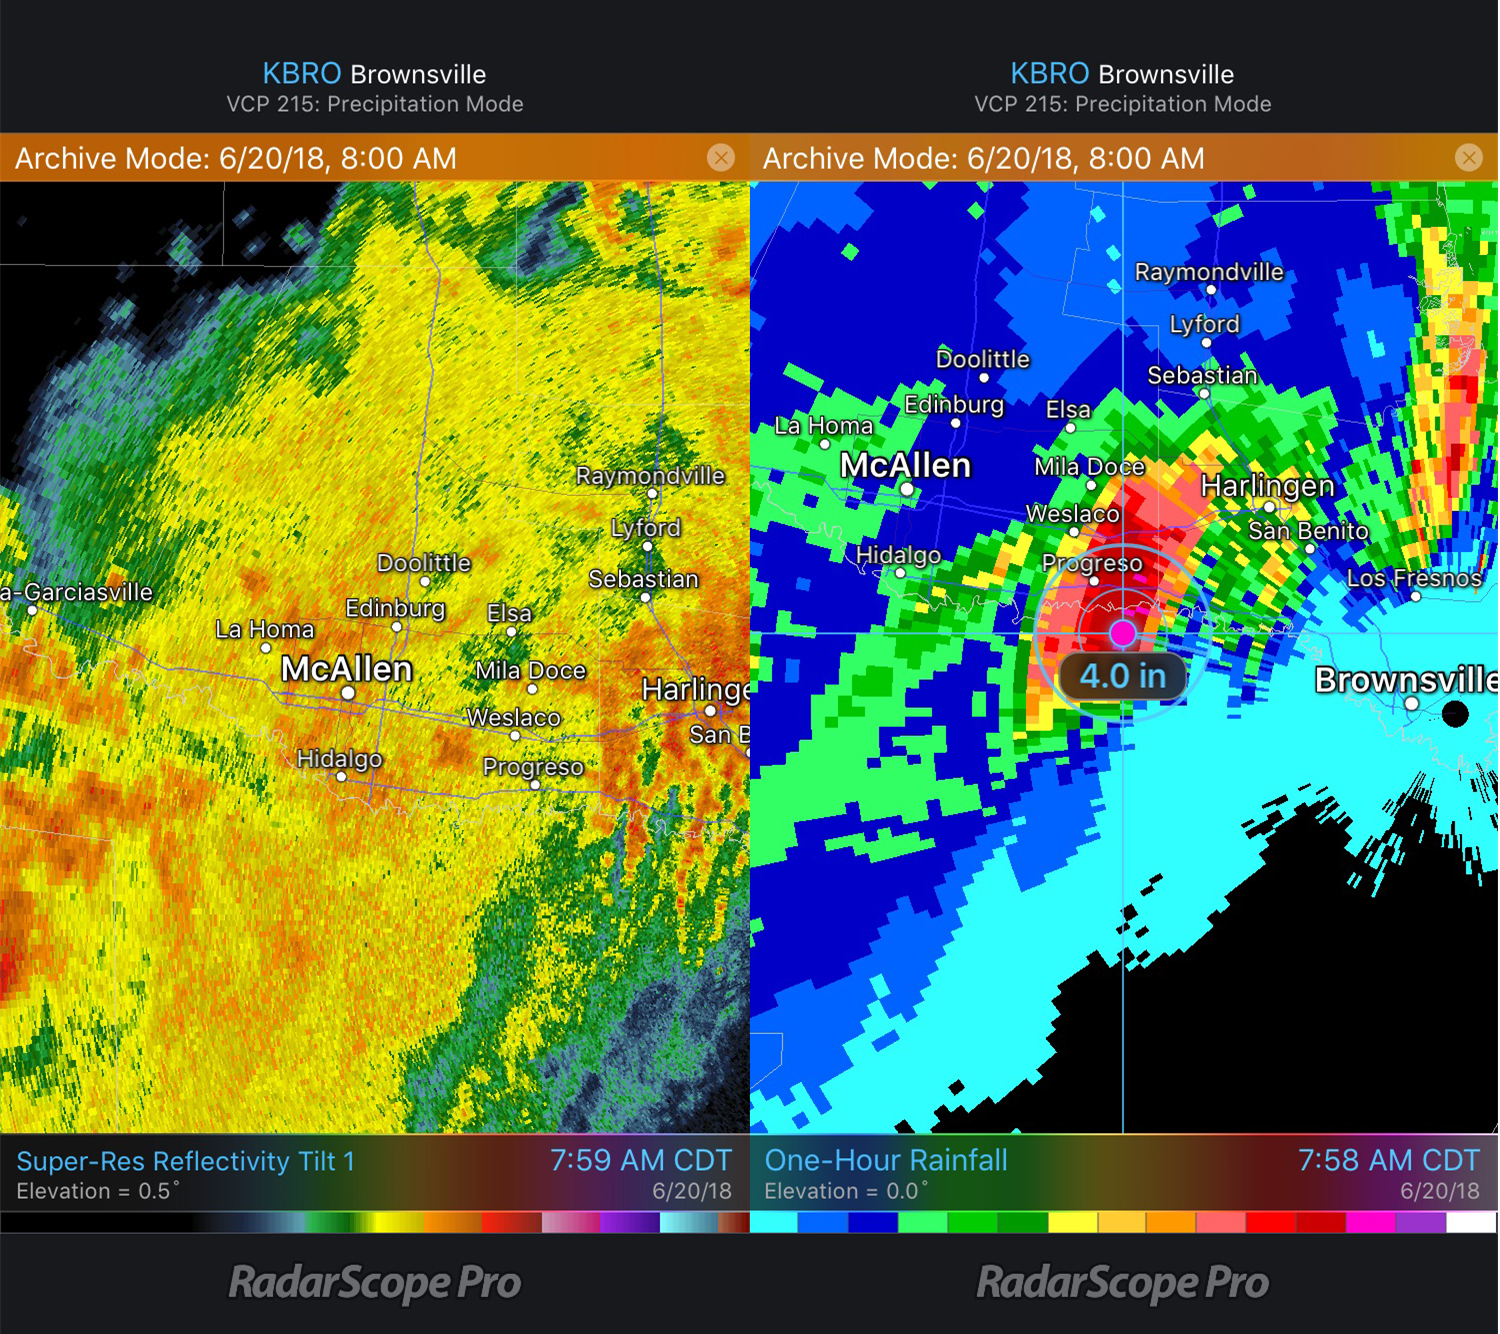 Reflectivity and One Hour Rainfall 6/20/18 8am CDT